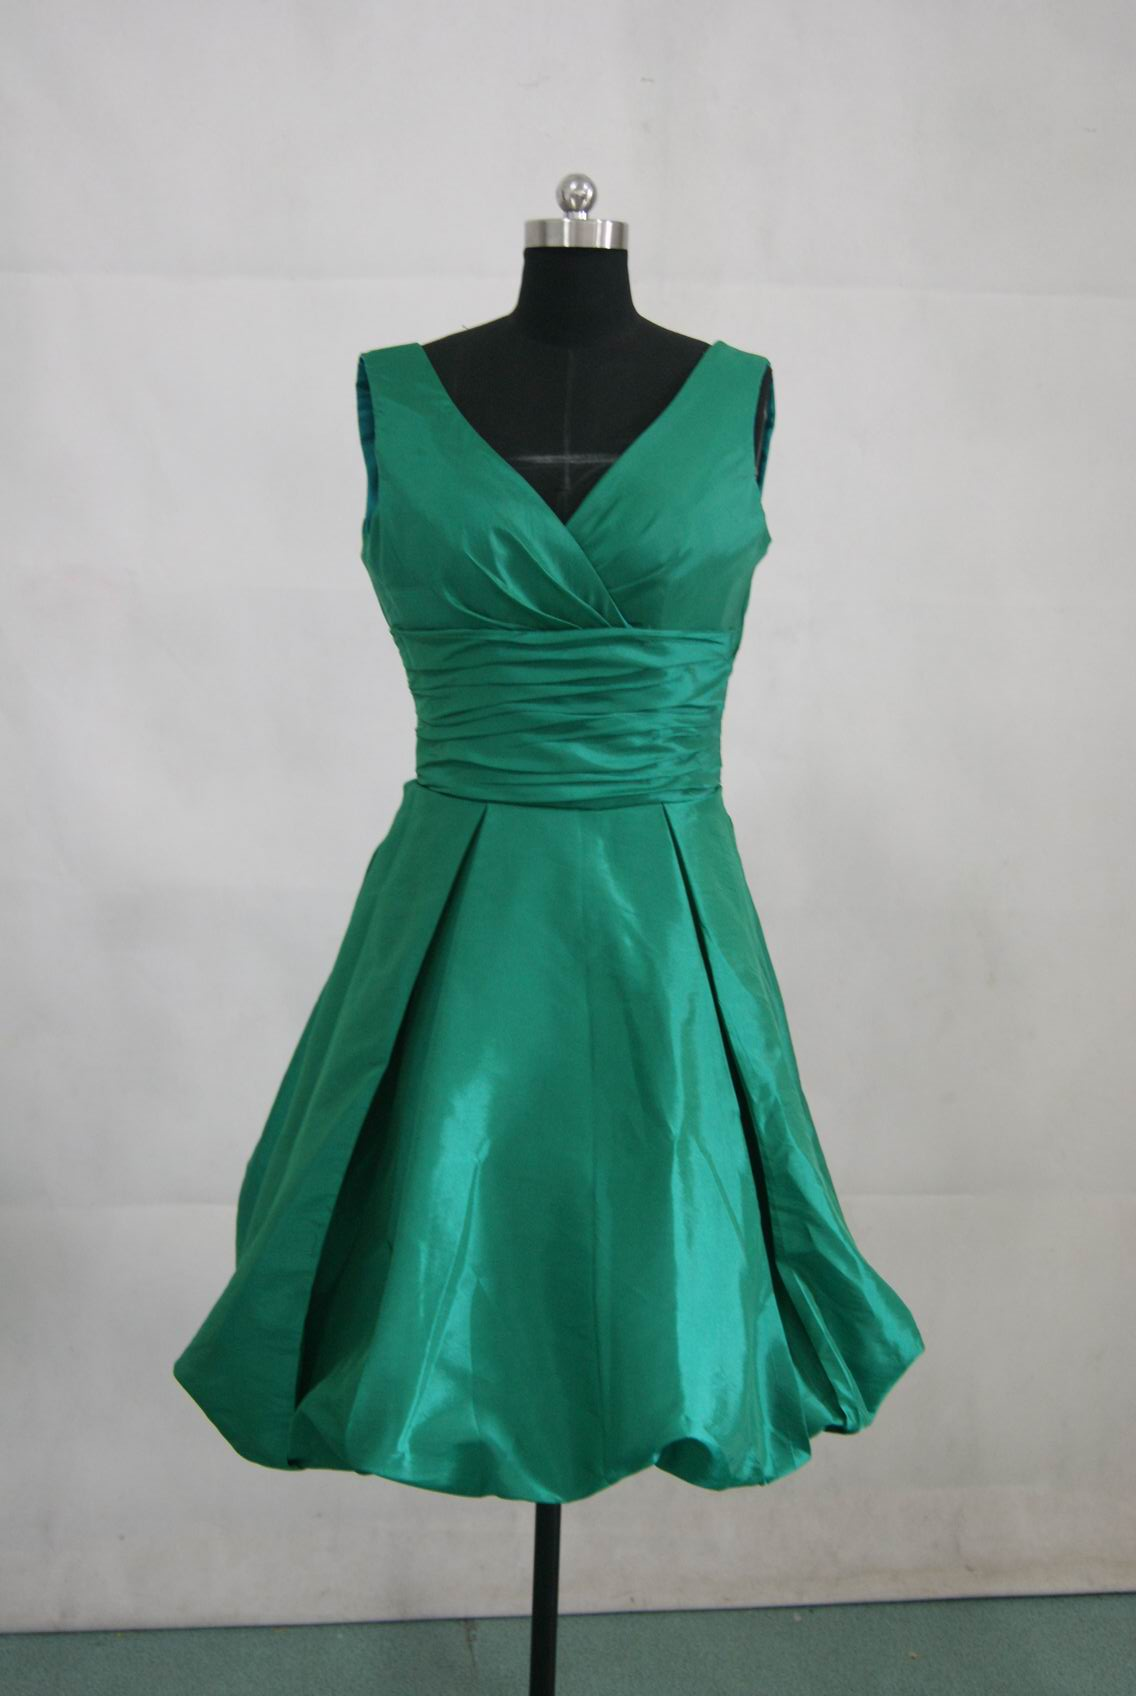 Taffeta Dresses - taffeta prom dresses - pageant dresses.